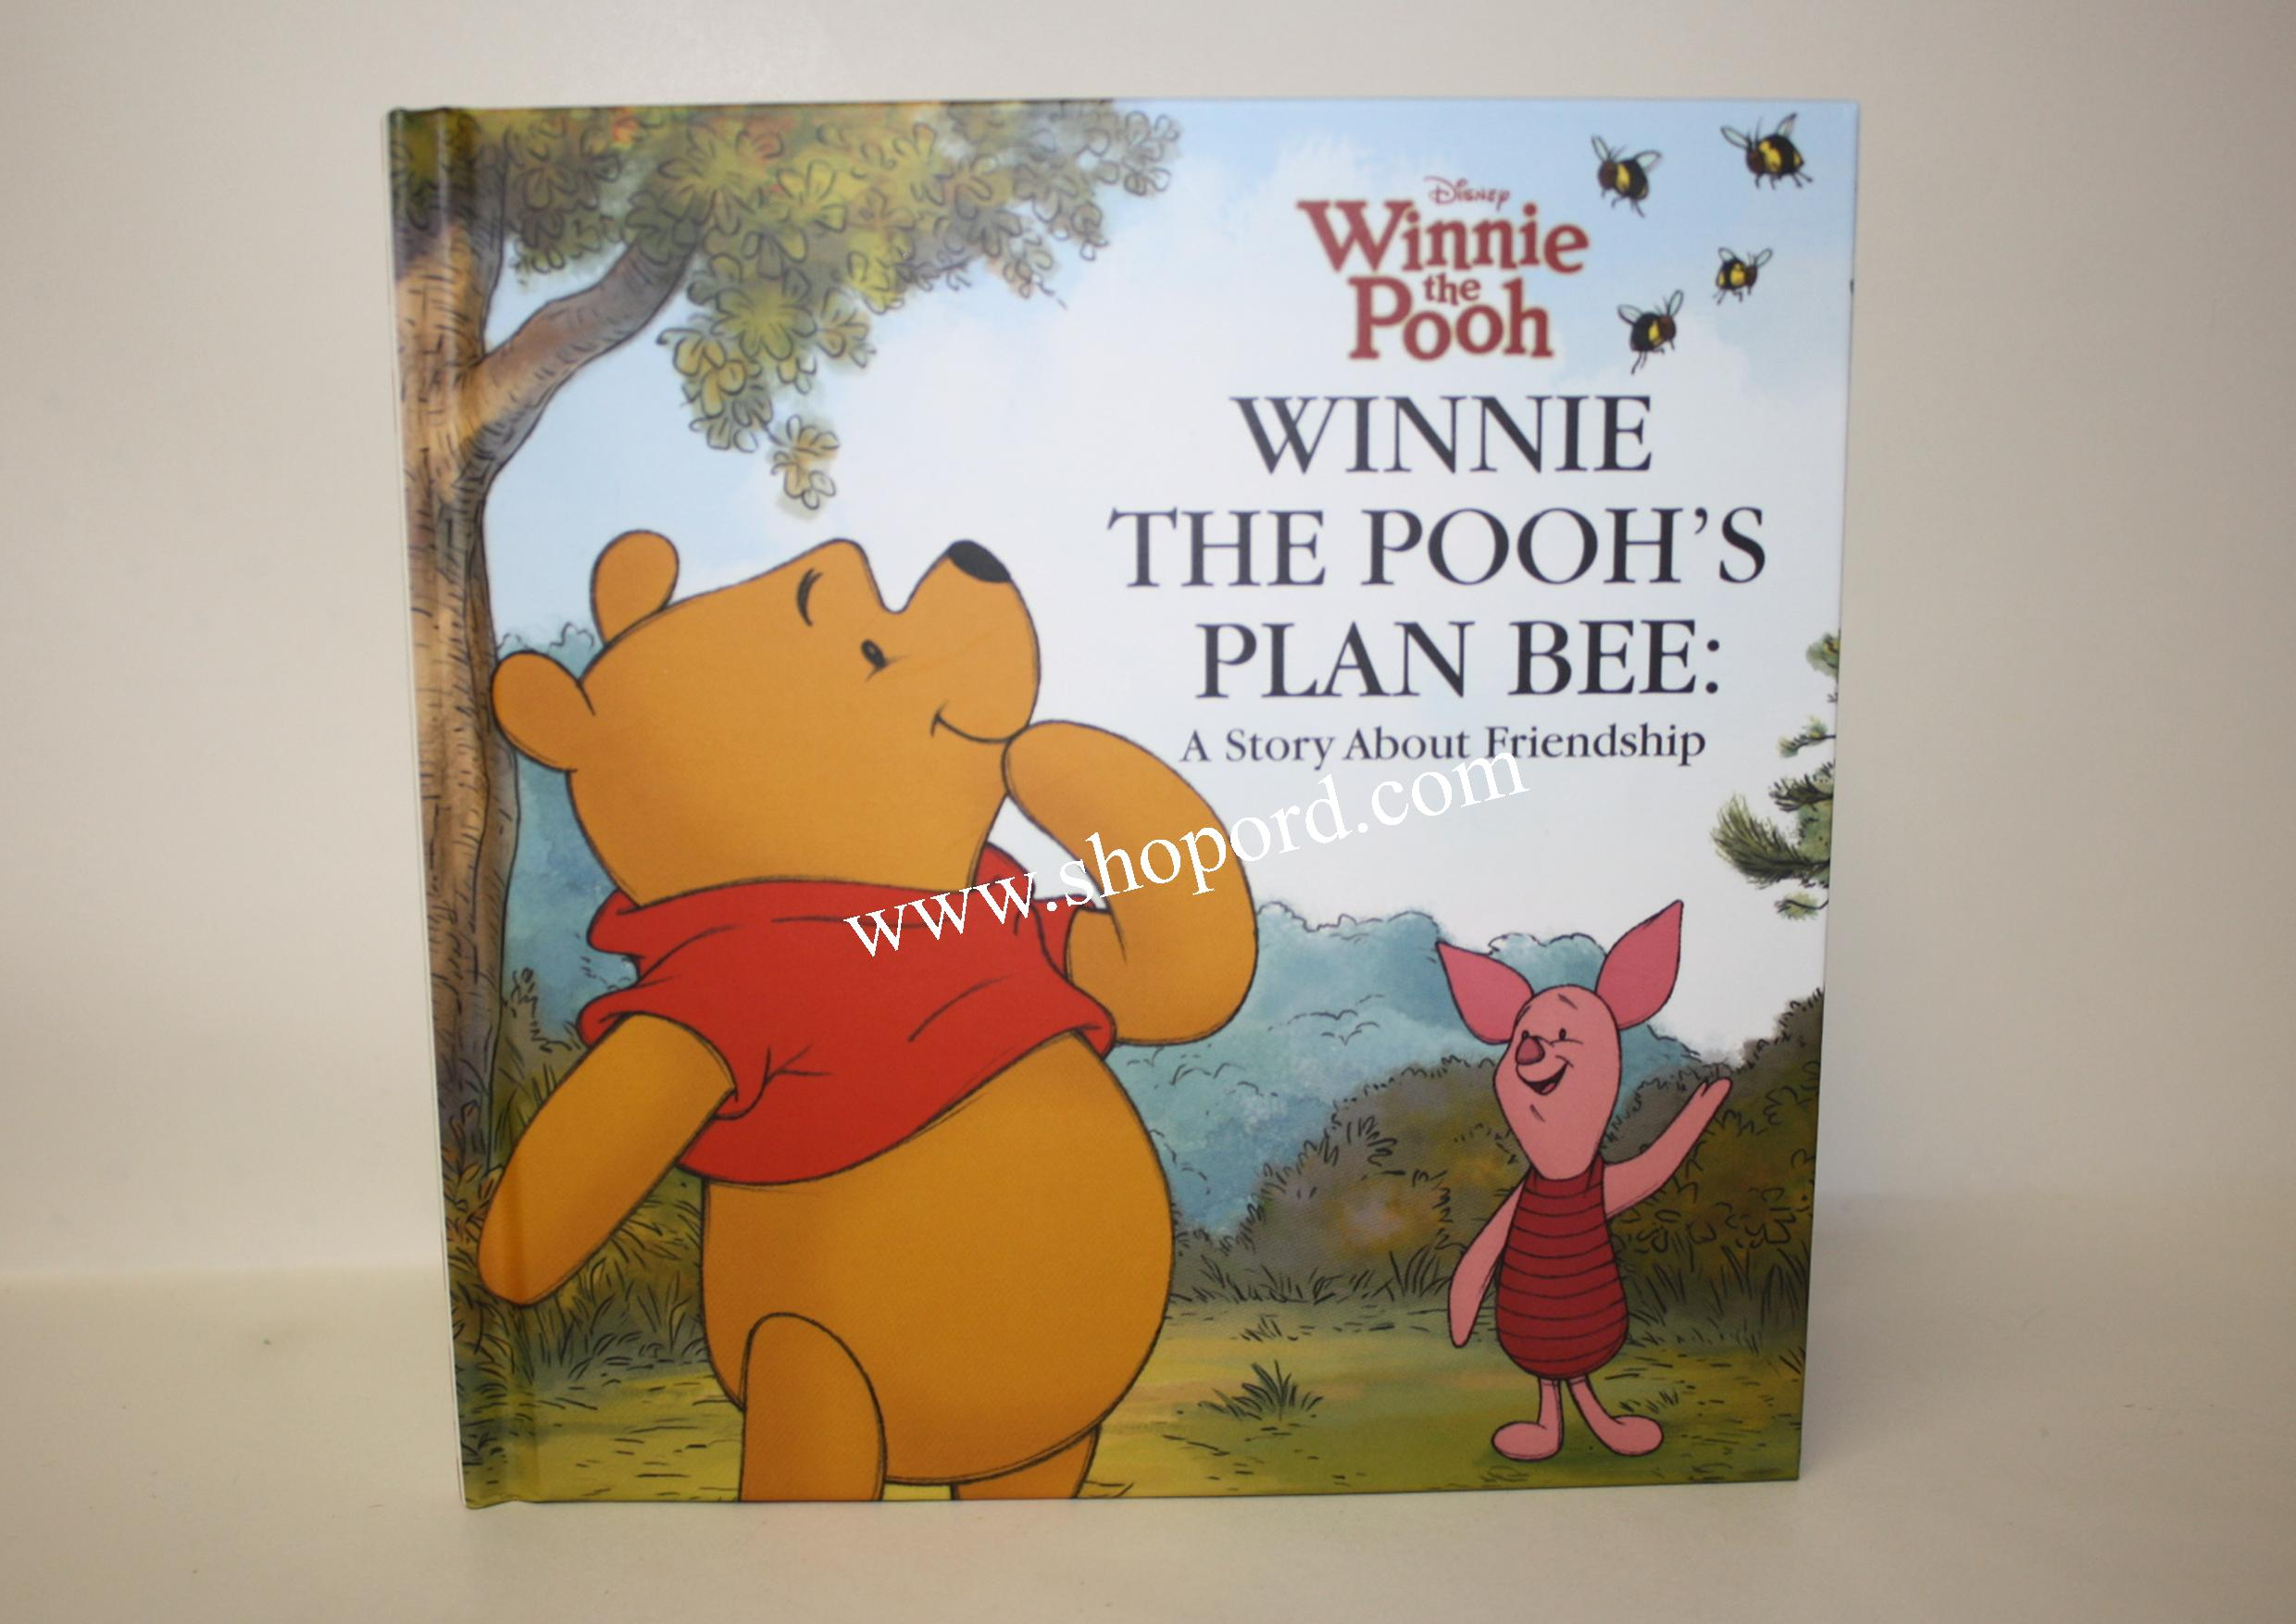 Hallmark Winnie The Poohs Plan Bee A Story About Friendship Hardcover Book VTD1576